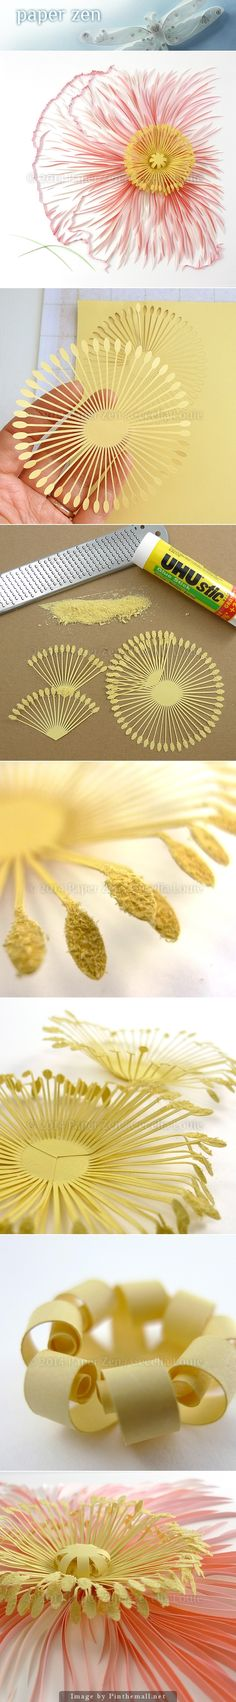 Quilling and laser cut combined for wonderful pollen effect! Quilling Instructions, Quilling Tutorial, Quilling Paper Craft, Quilling Flowers, Kirigami, Handmade Flowers, Diy Flowers, Paper Flowers, Quilling Patterns